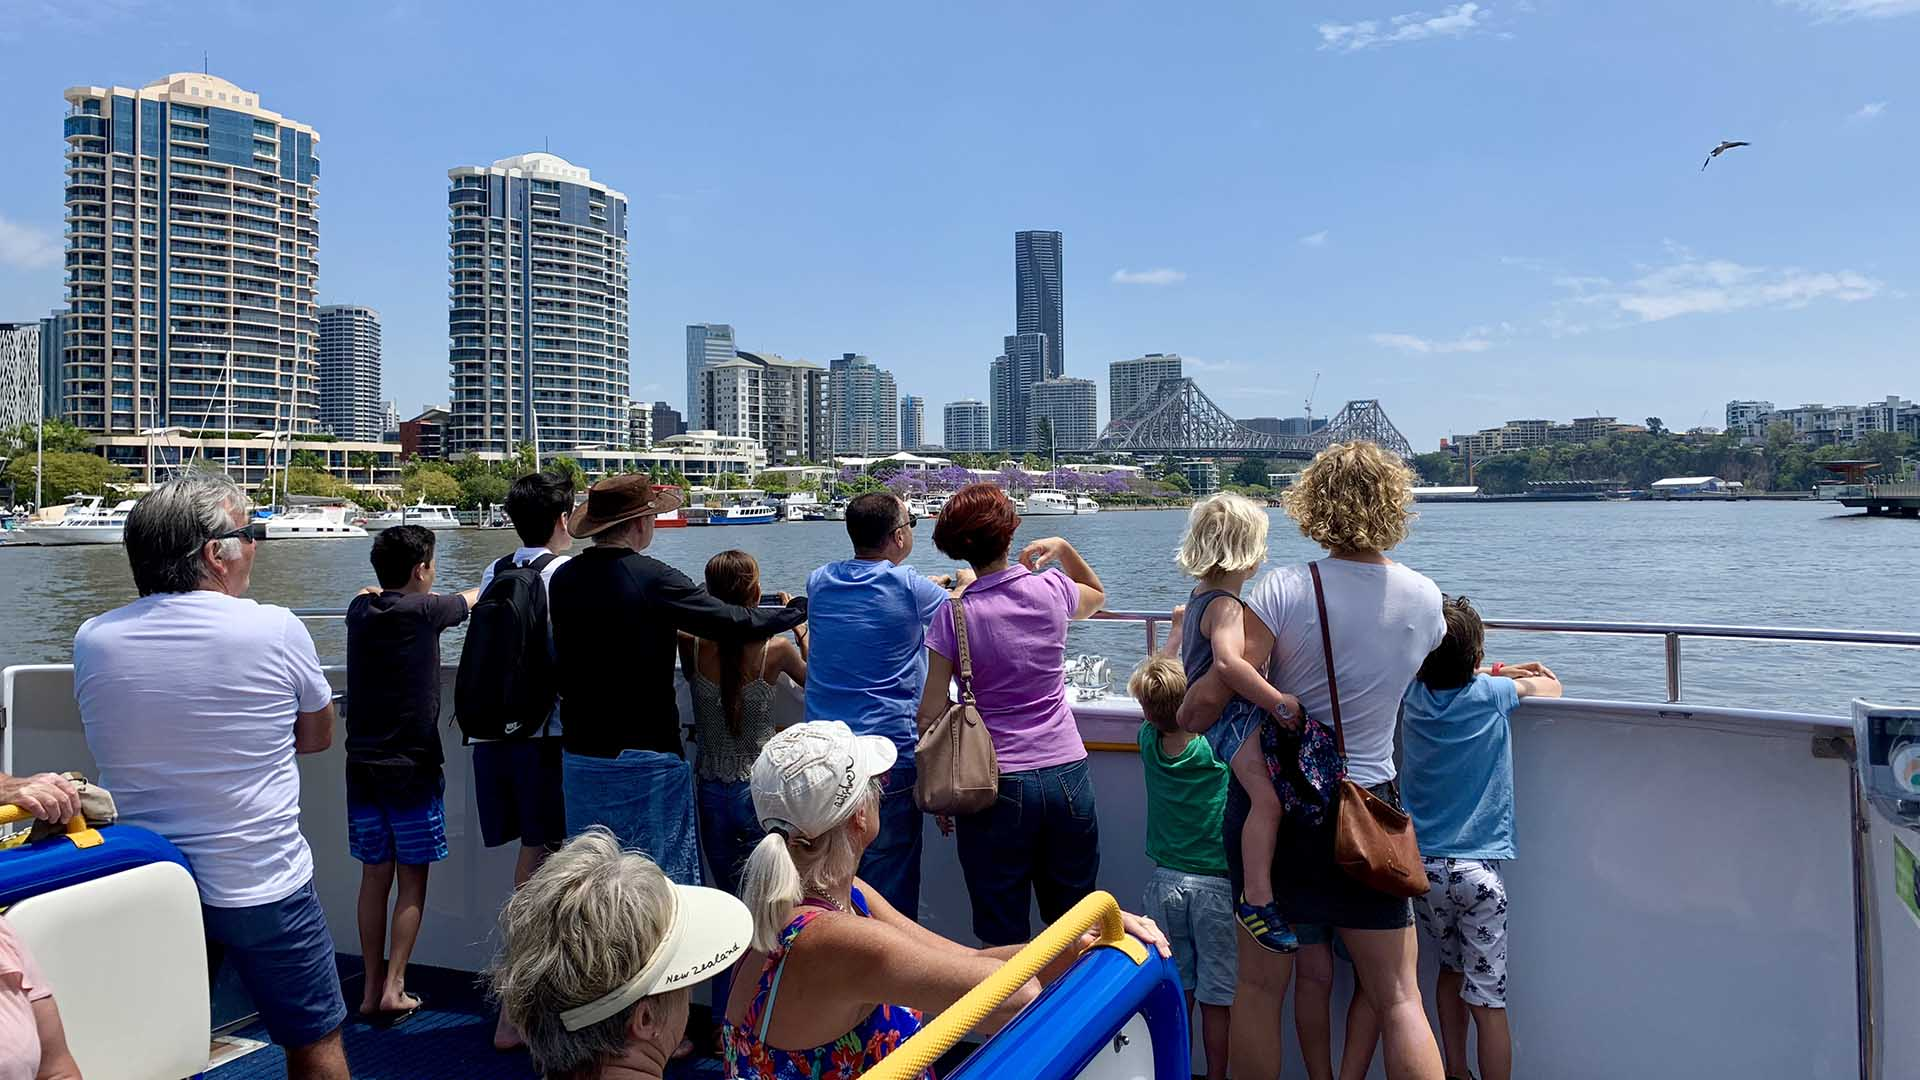 You Can Now Take Your Pet Pooch for a CityCat Ride Along the Brisbane River